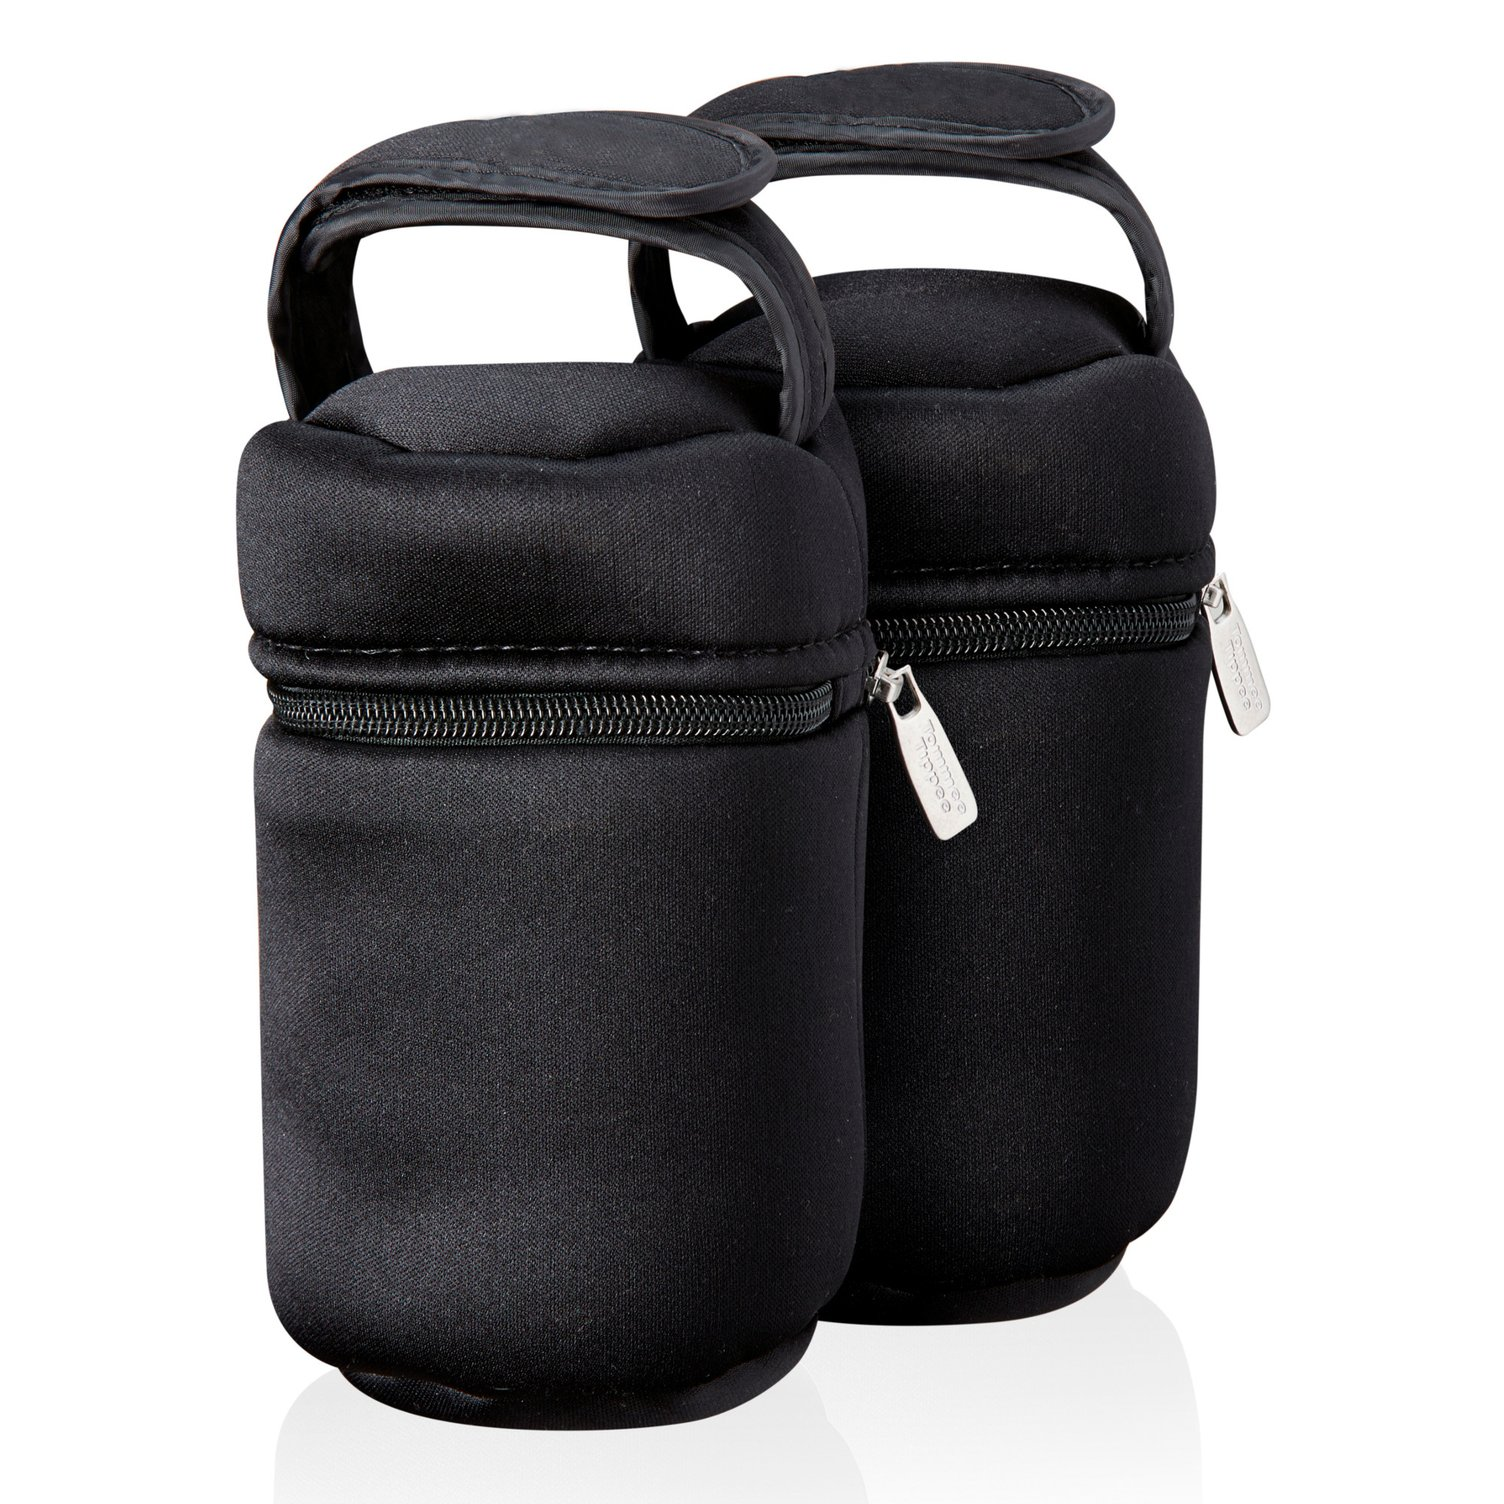 Tommee Tippee Insulated Bottle Bag and Bottle Cooler - Keeps Cold or Warm Bottles - 2 Count by Tommee Tippee